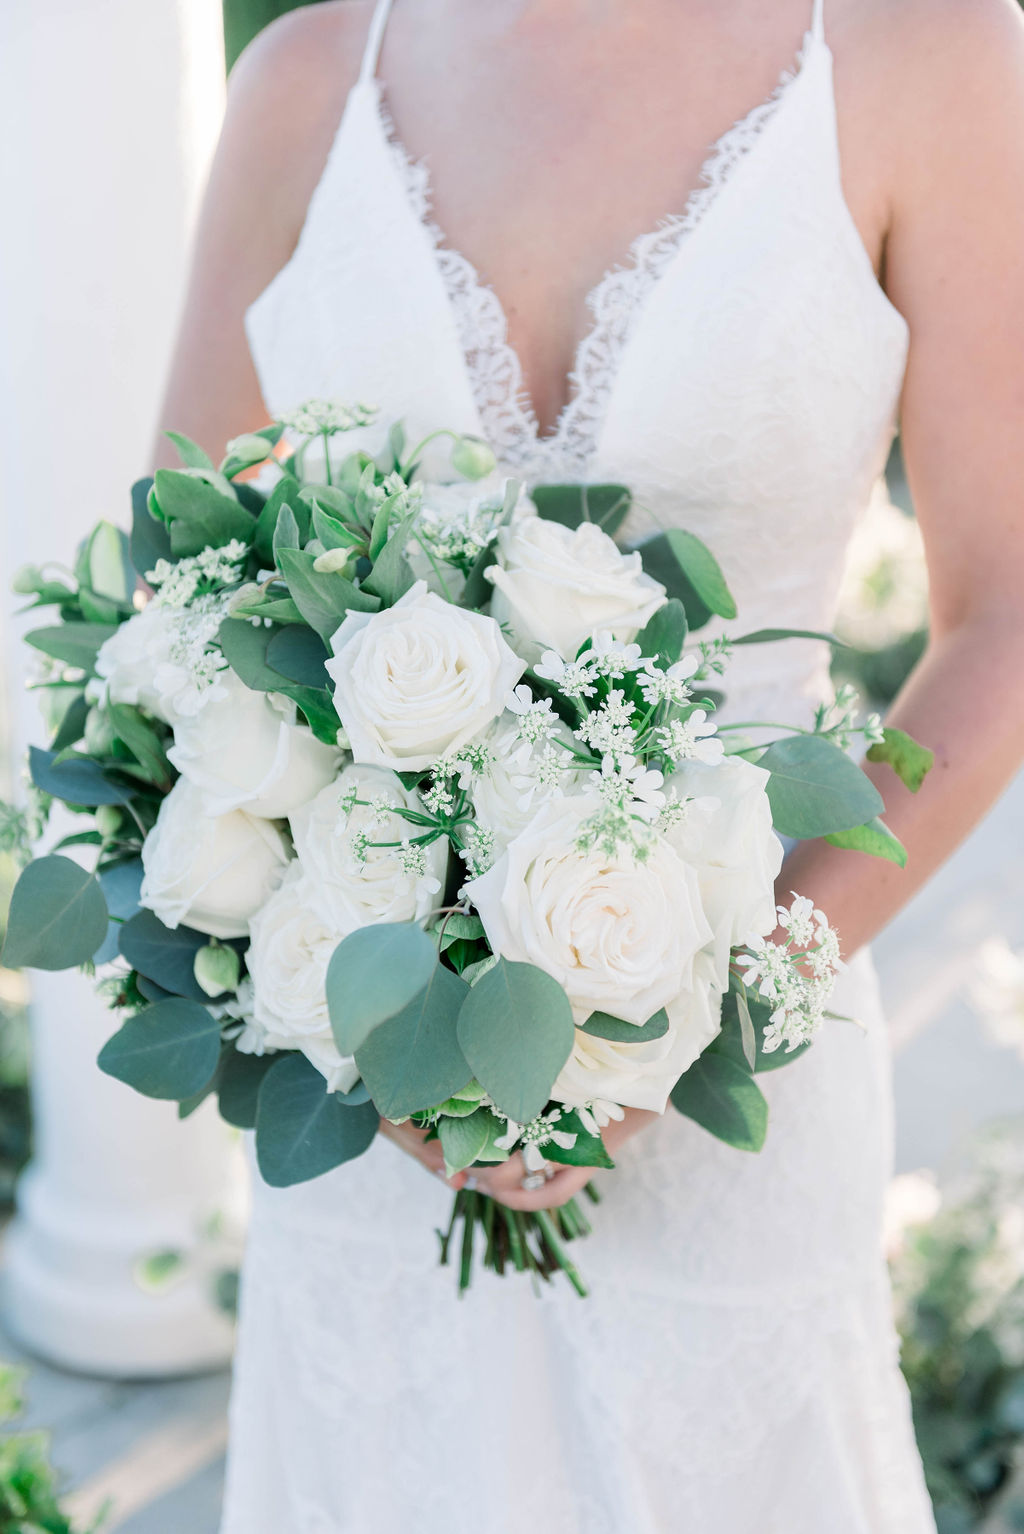 bride holding a white rose and eucalyptus bouquet